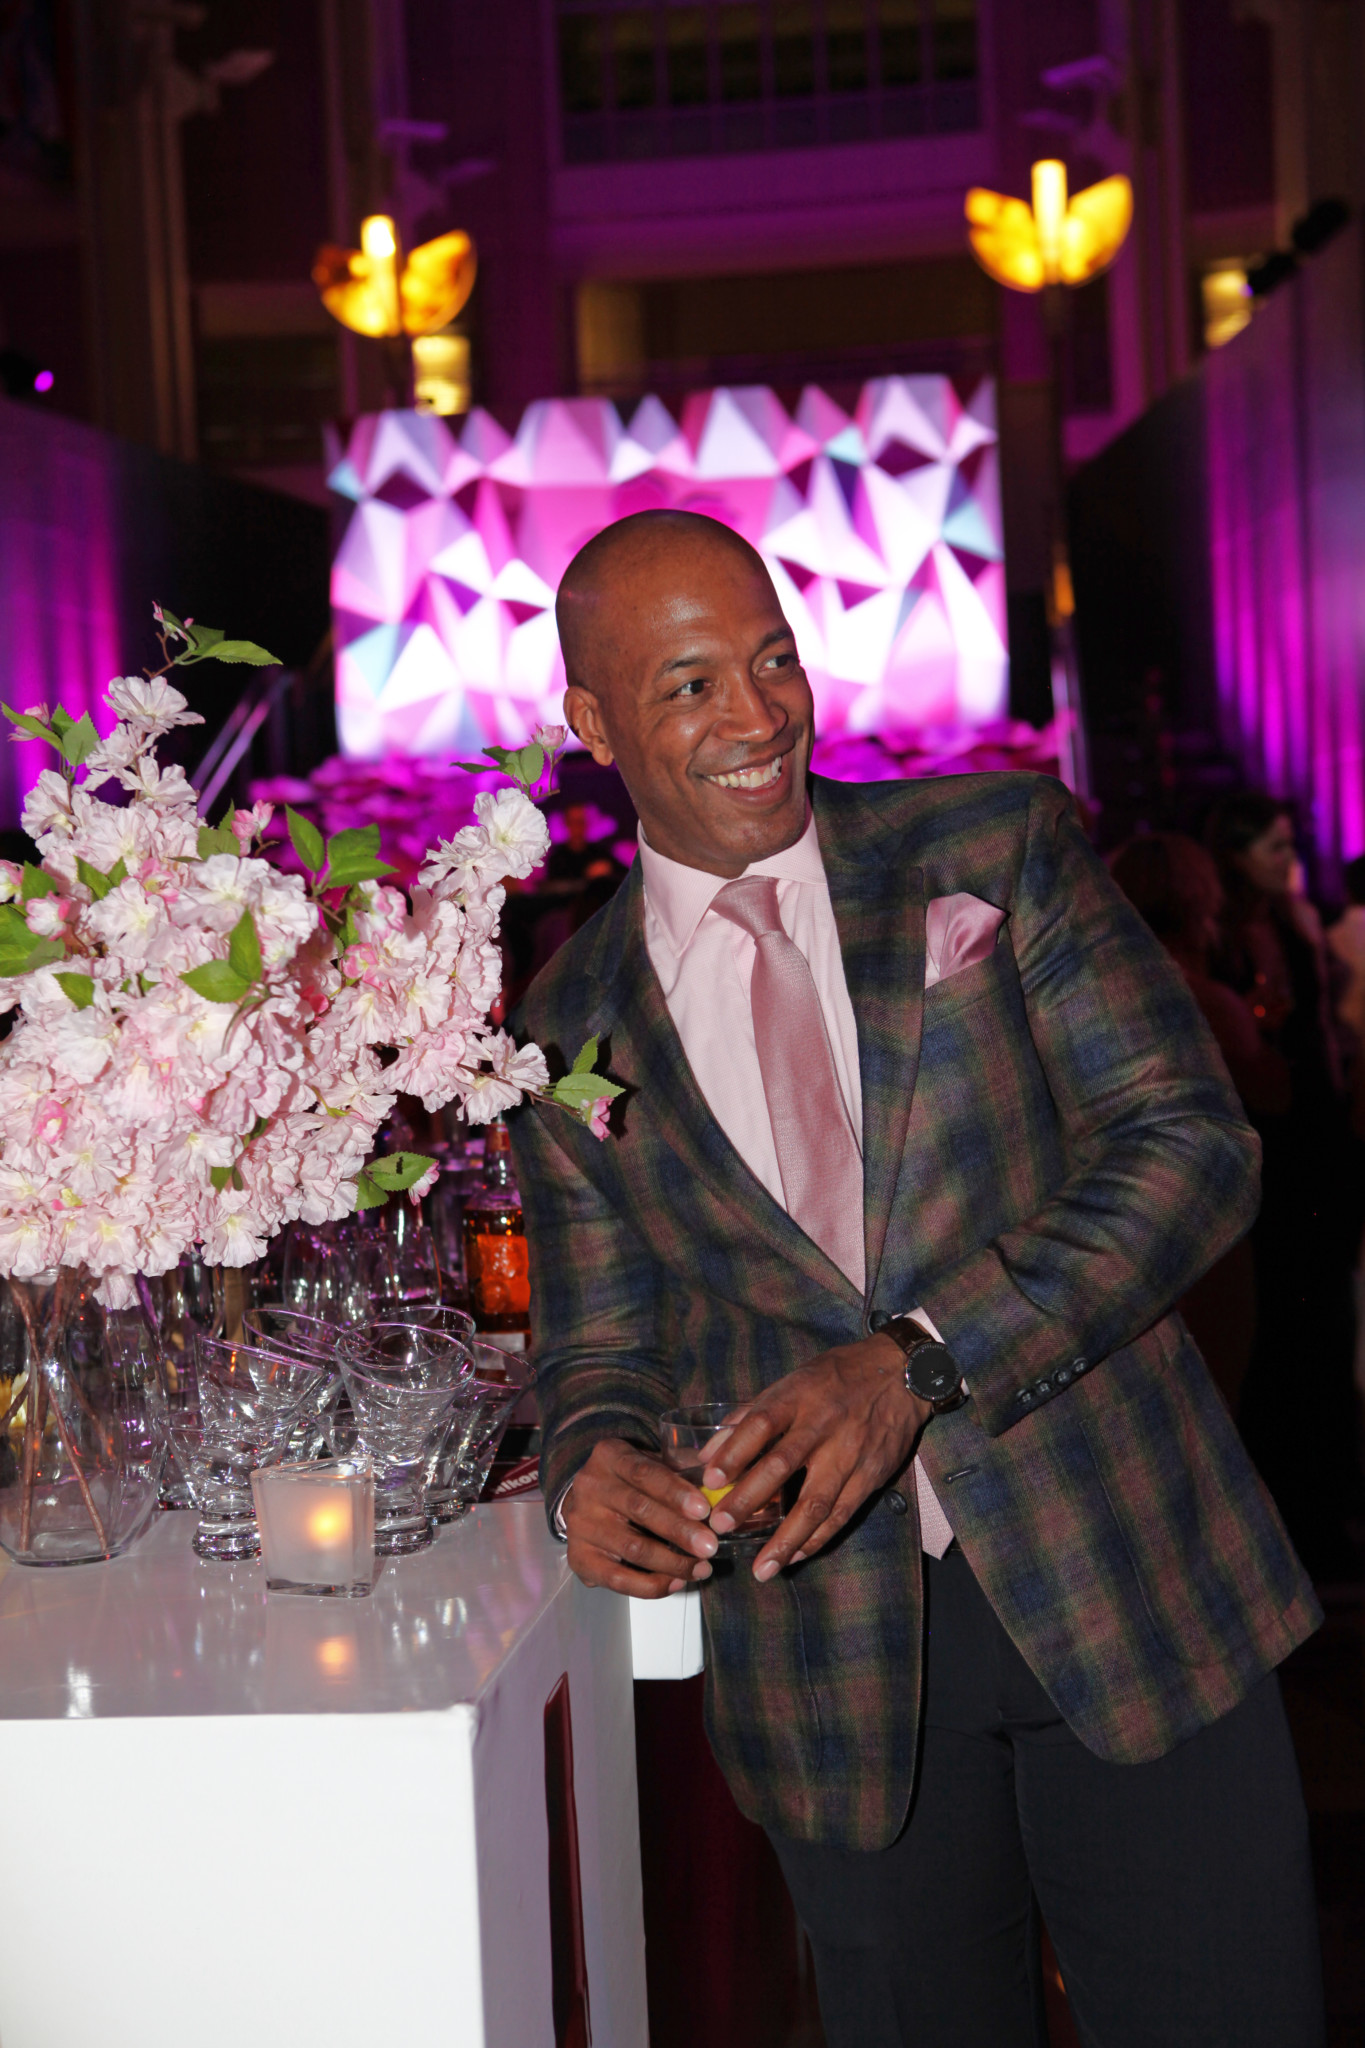 DCFashion Fool Cherry Blossom Pnk Tie Party